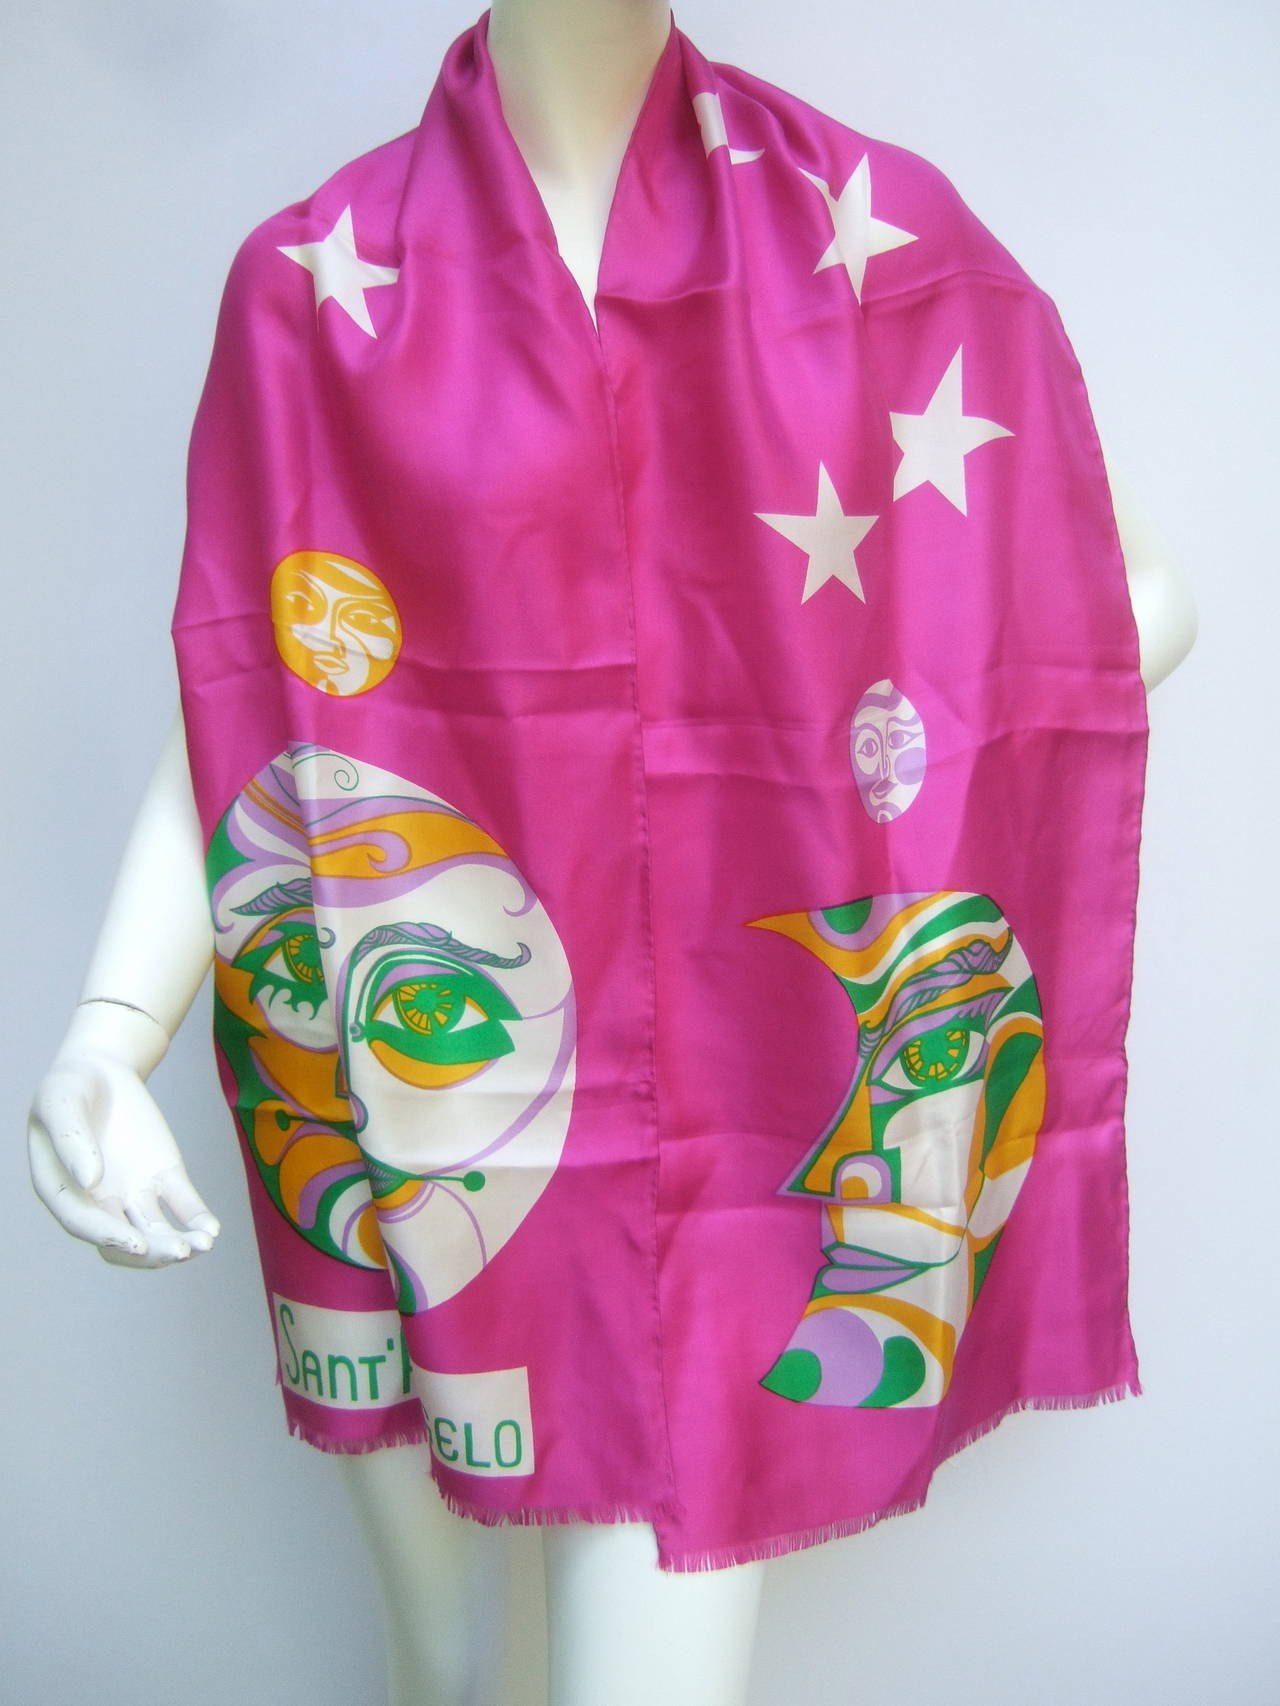 Sant' Angelo Moon & stars fuchsia silk oblong scarf c 1970 The mod designer scarf is designed with a bold figural  full moon & crescent moon. The color block moons are accented with a cluster of twinkling white stars    The long dramatic hand